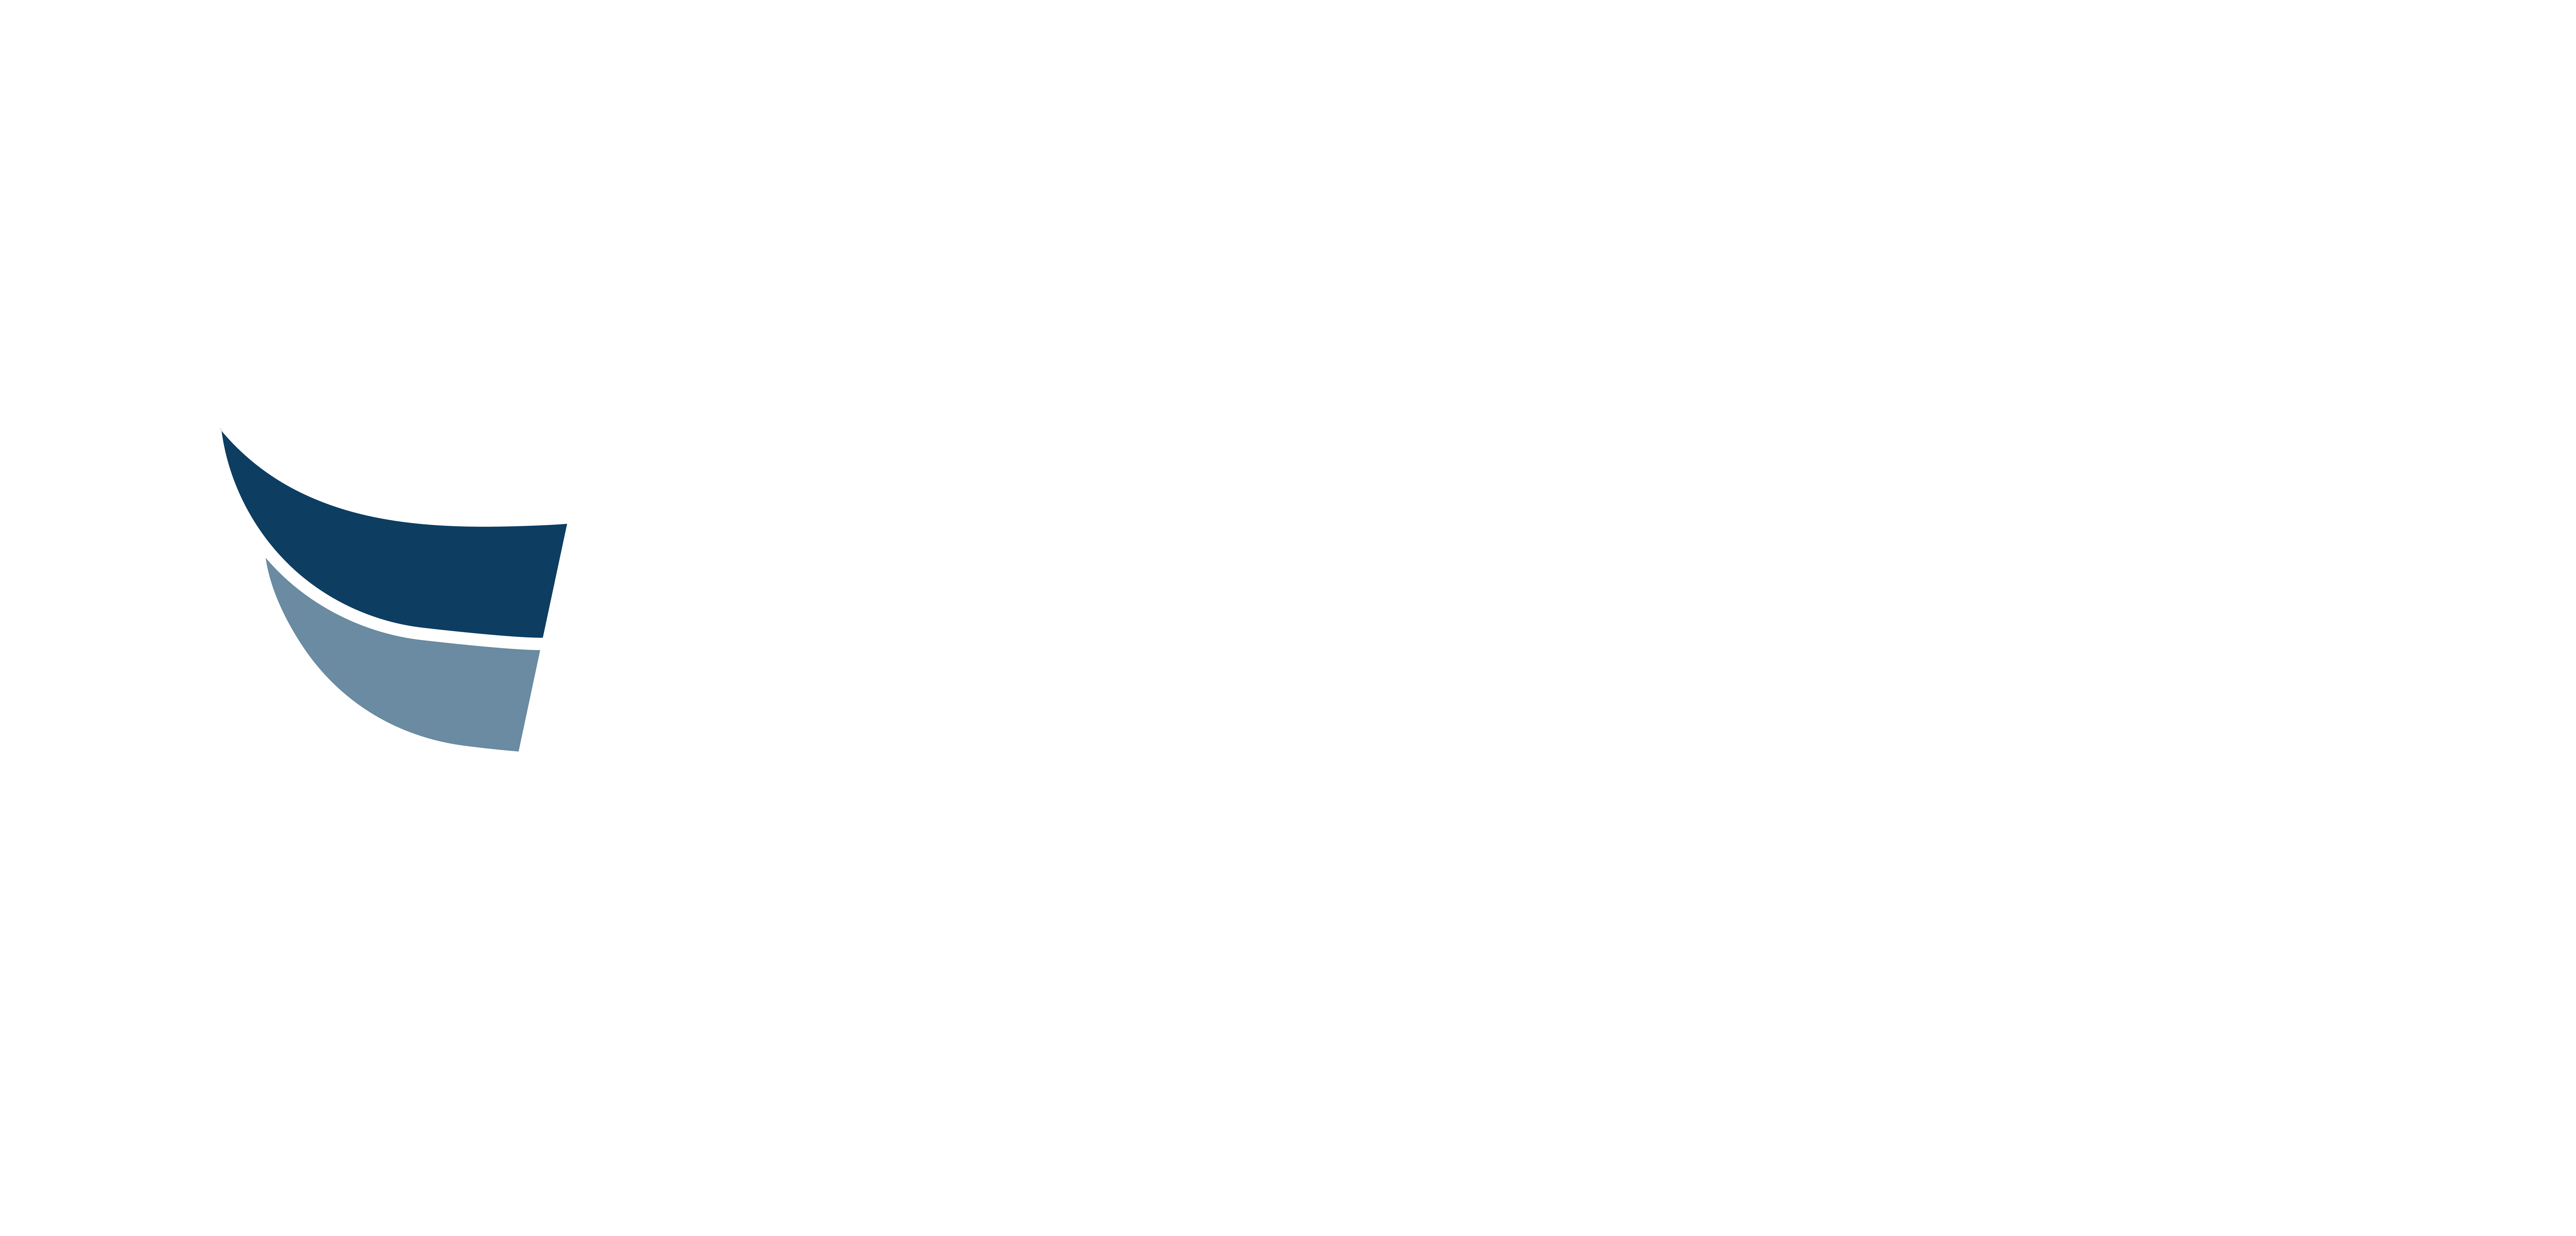 Mid-Continent Aviation Services – Keeping You in the Air